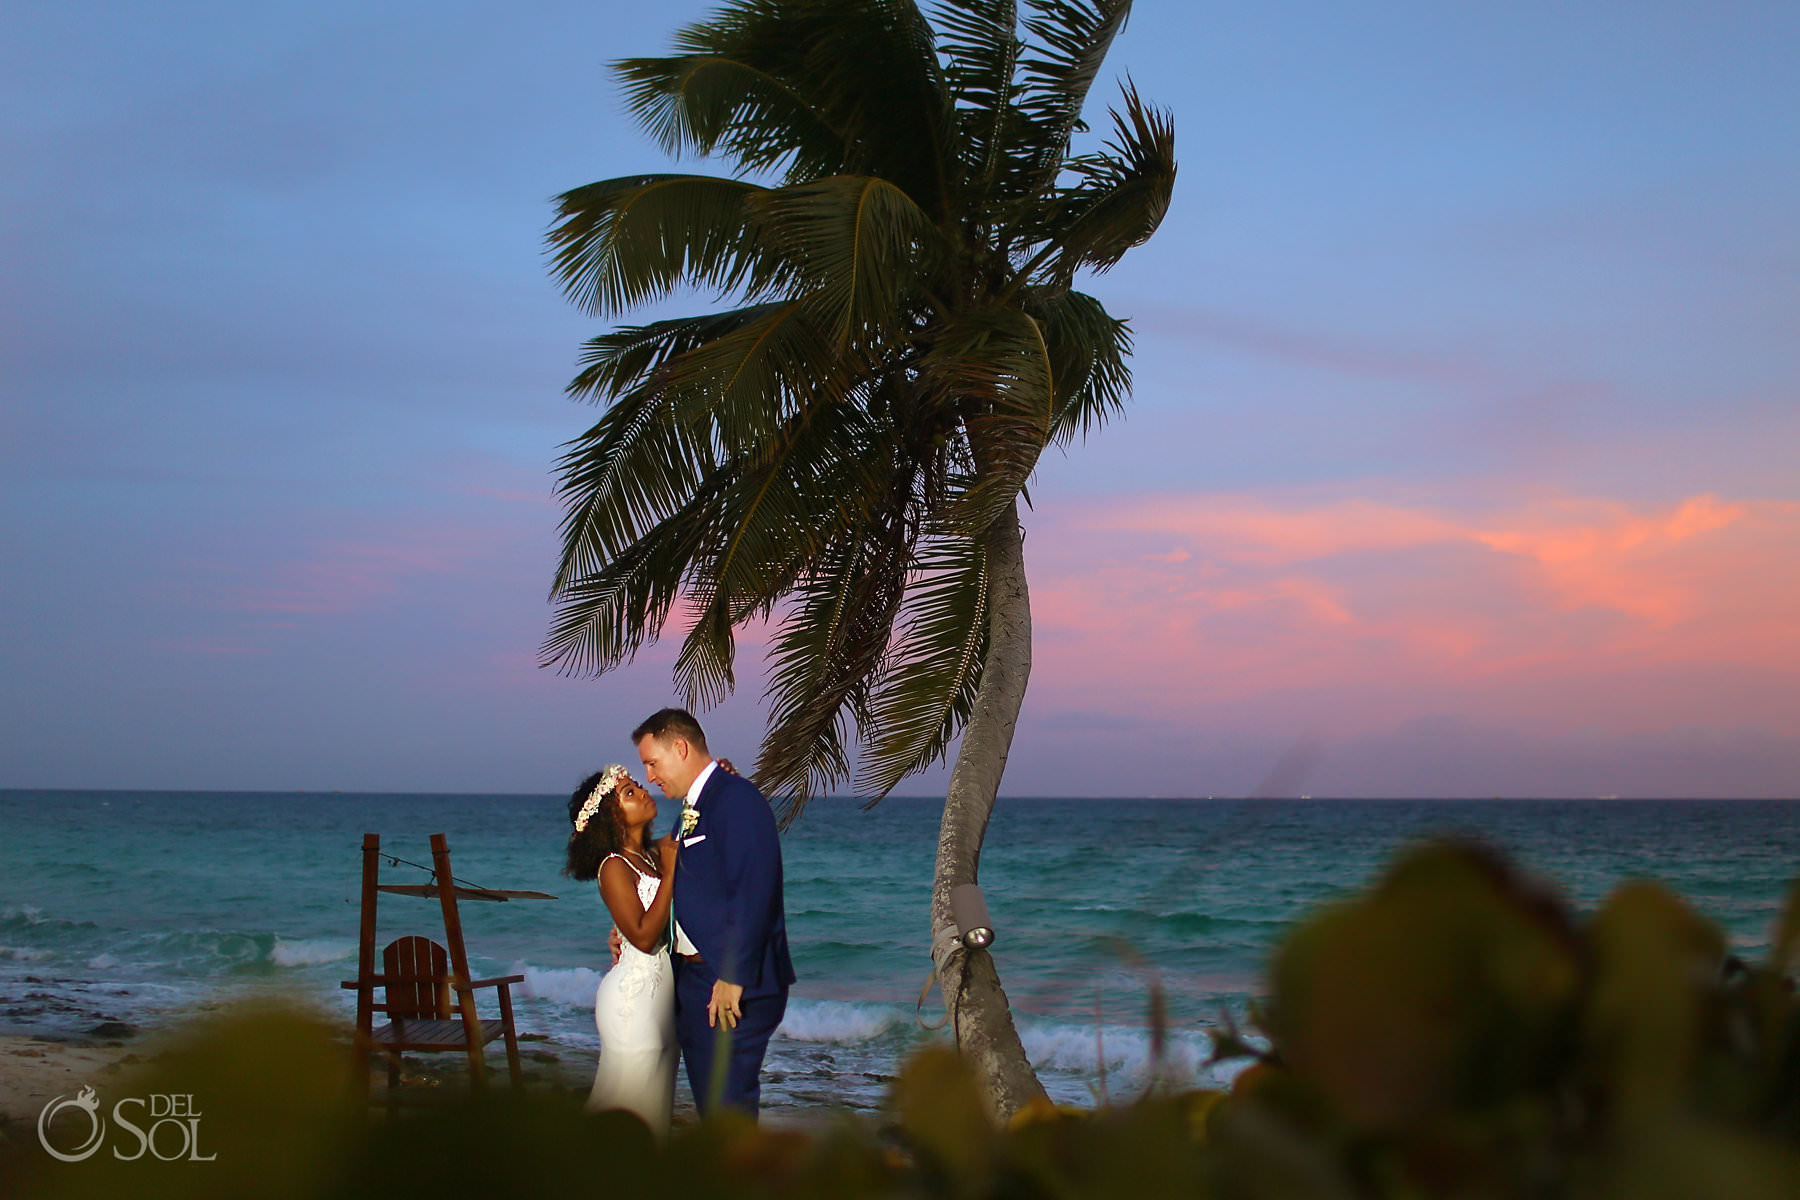 Sunset wedding portrait Hotel Xcaret Mexico beach Riviera Maya mexico